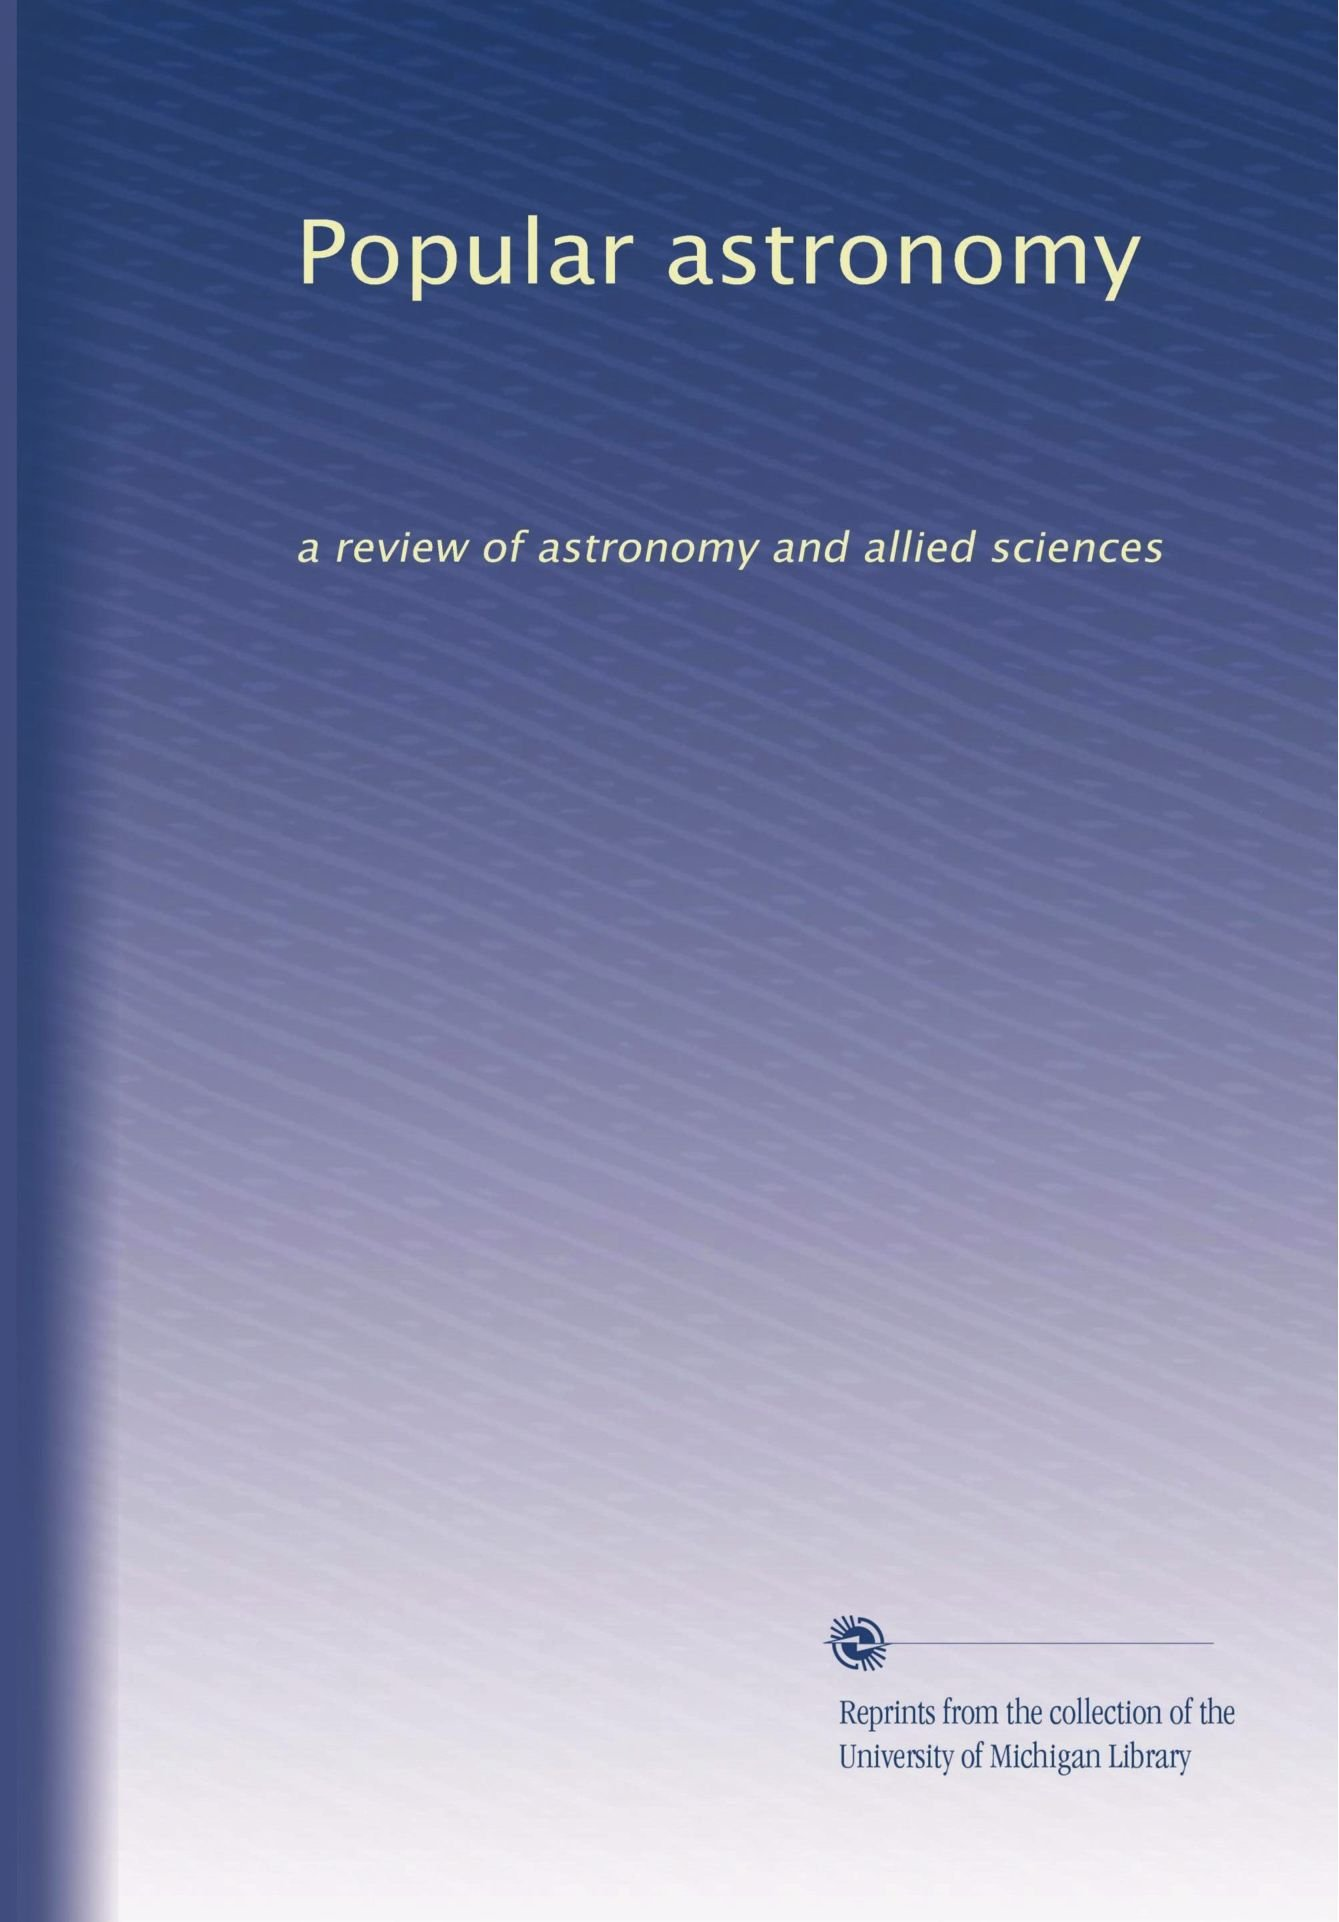 Download Popular astronomy: a review of astronomy and allied sciences ebook